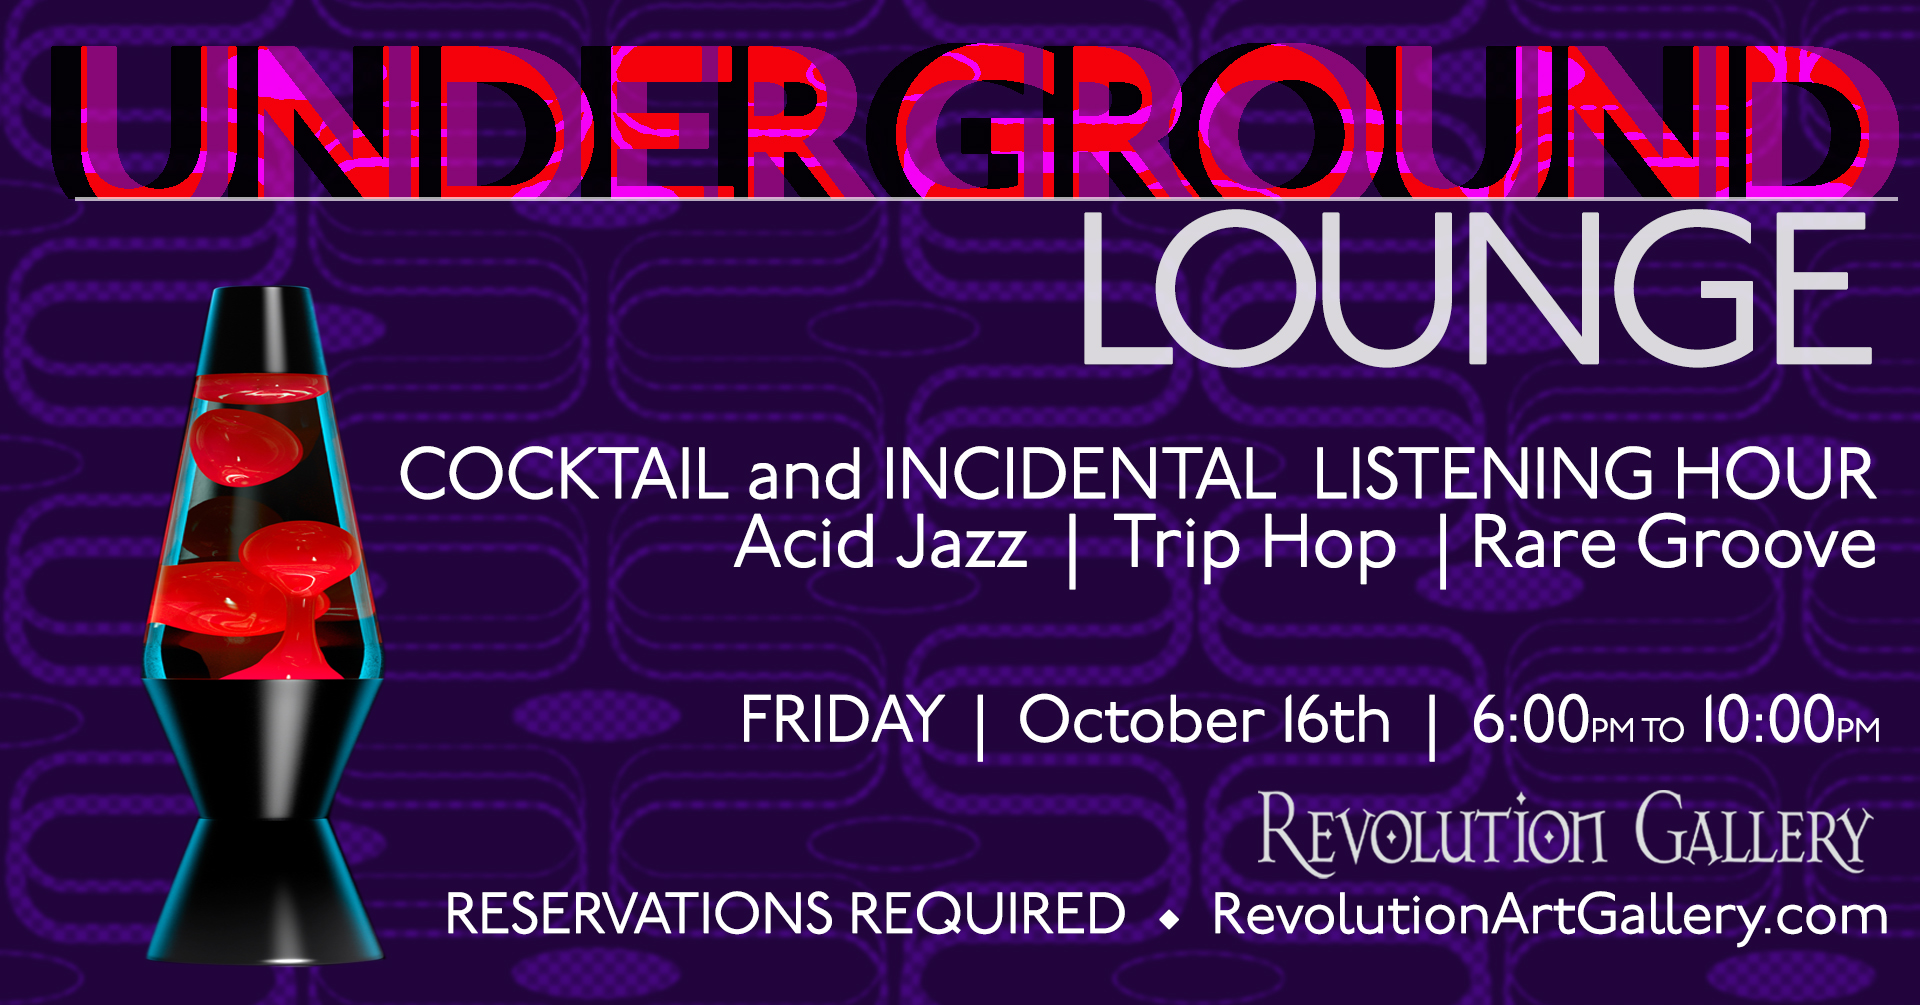 GROOVY_LOUNGE_OCT16th_FBbanner